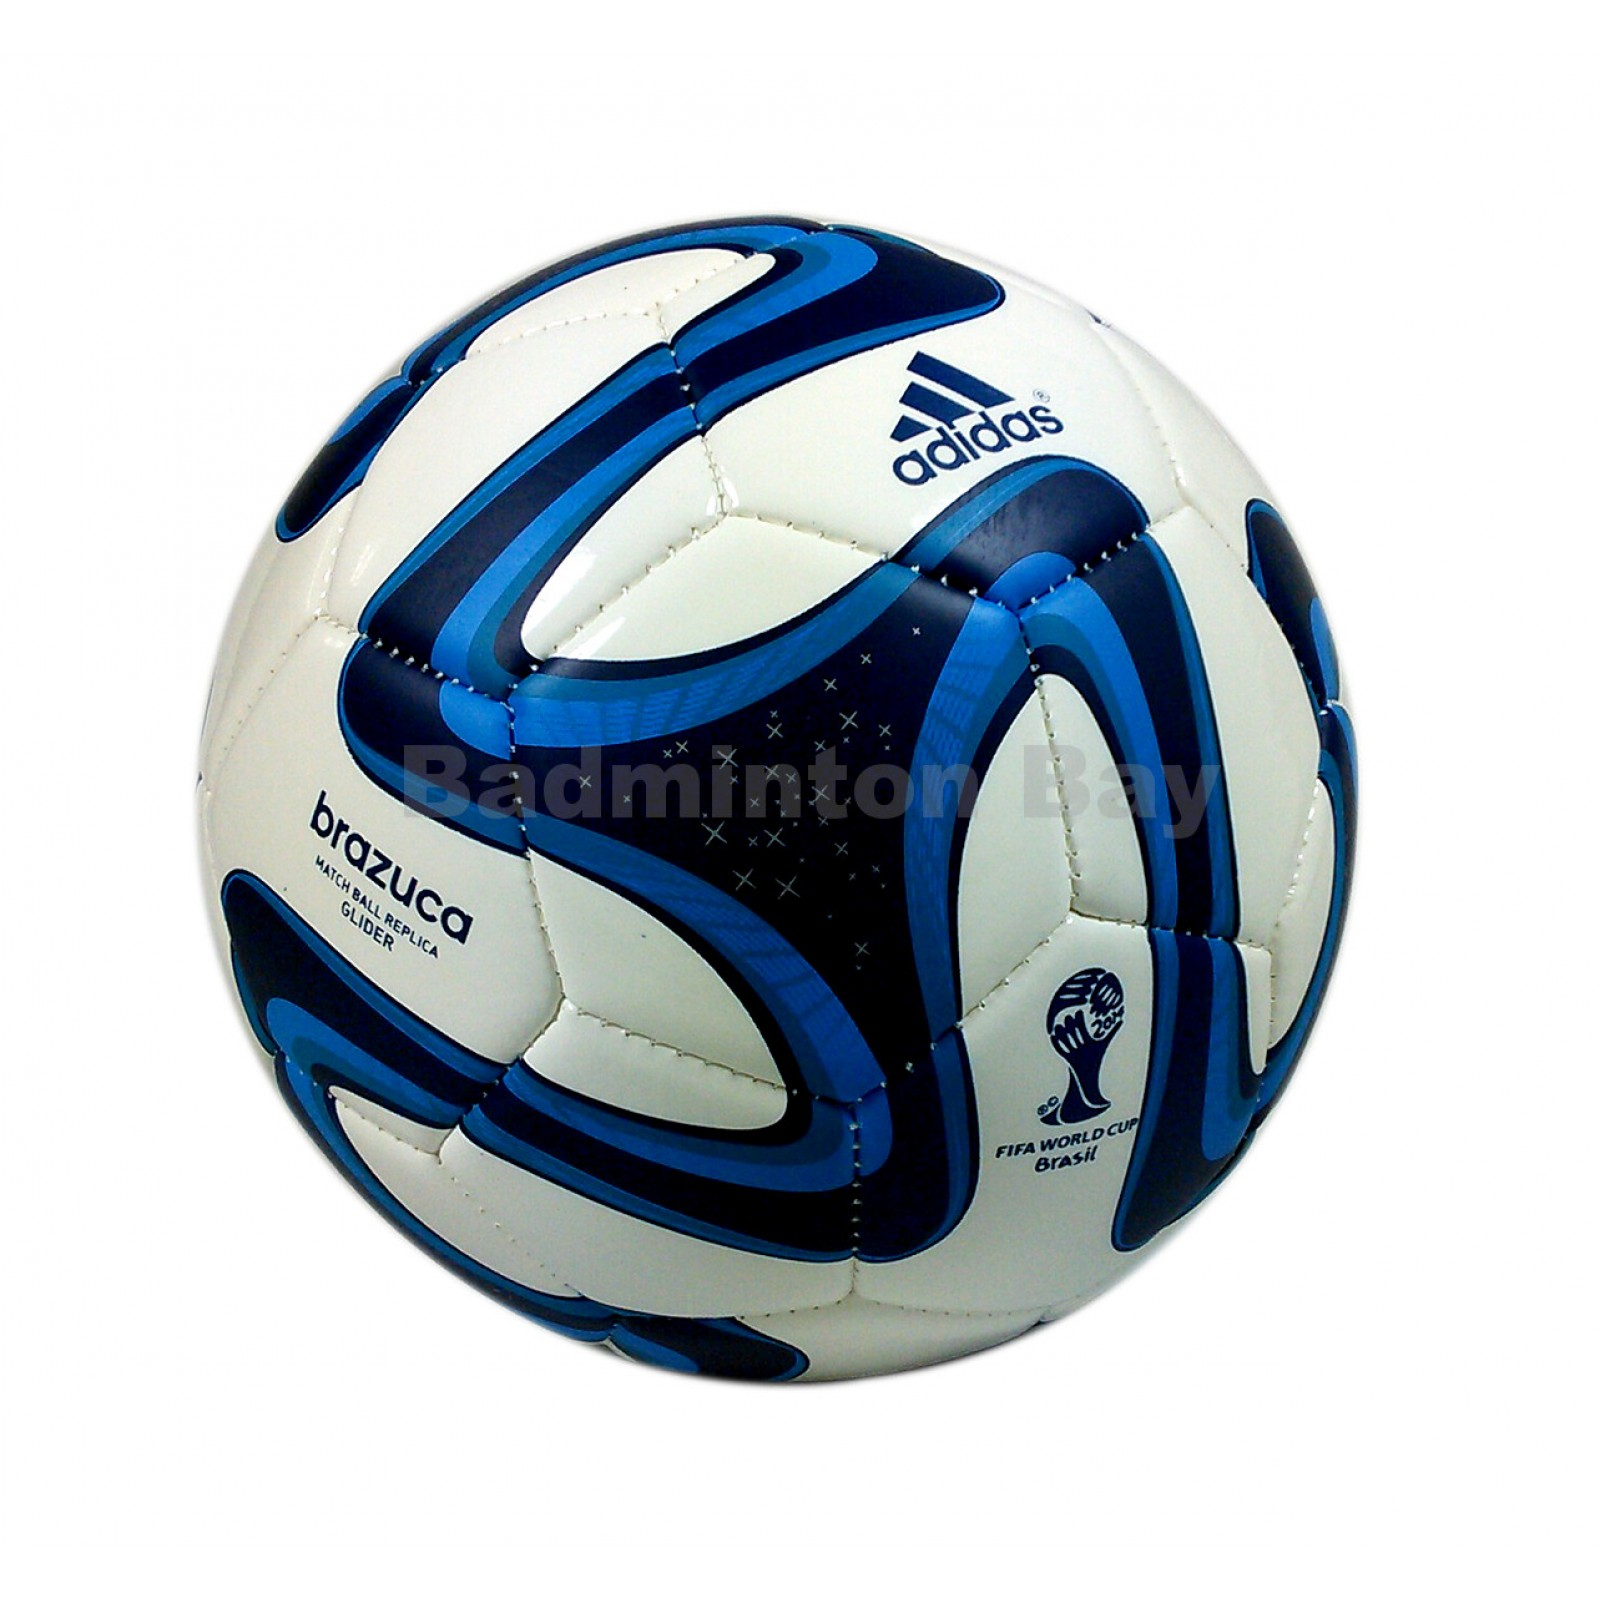 57be70de66 ~Out of stock Adidas Brazuca 2014 Glider Blue Football Match Ball Replica  FIFA Size 5